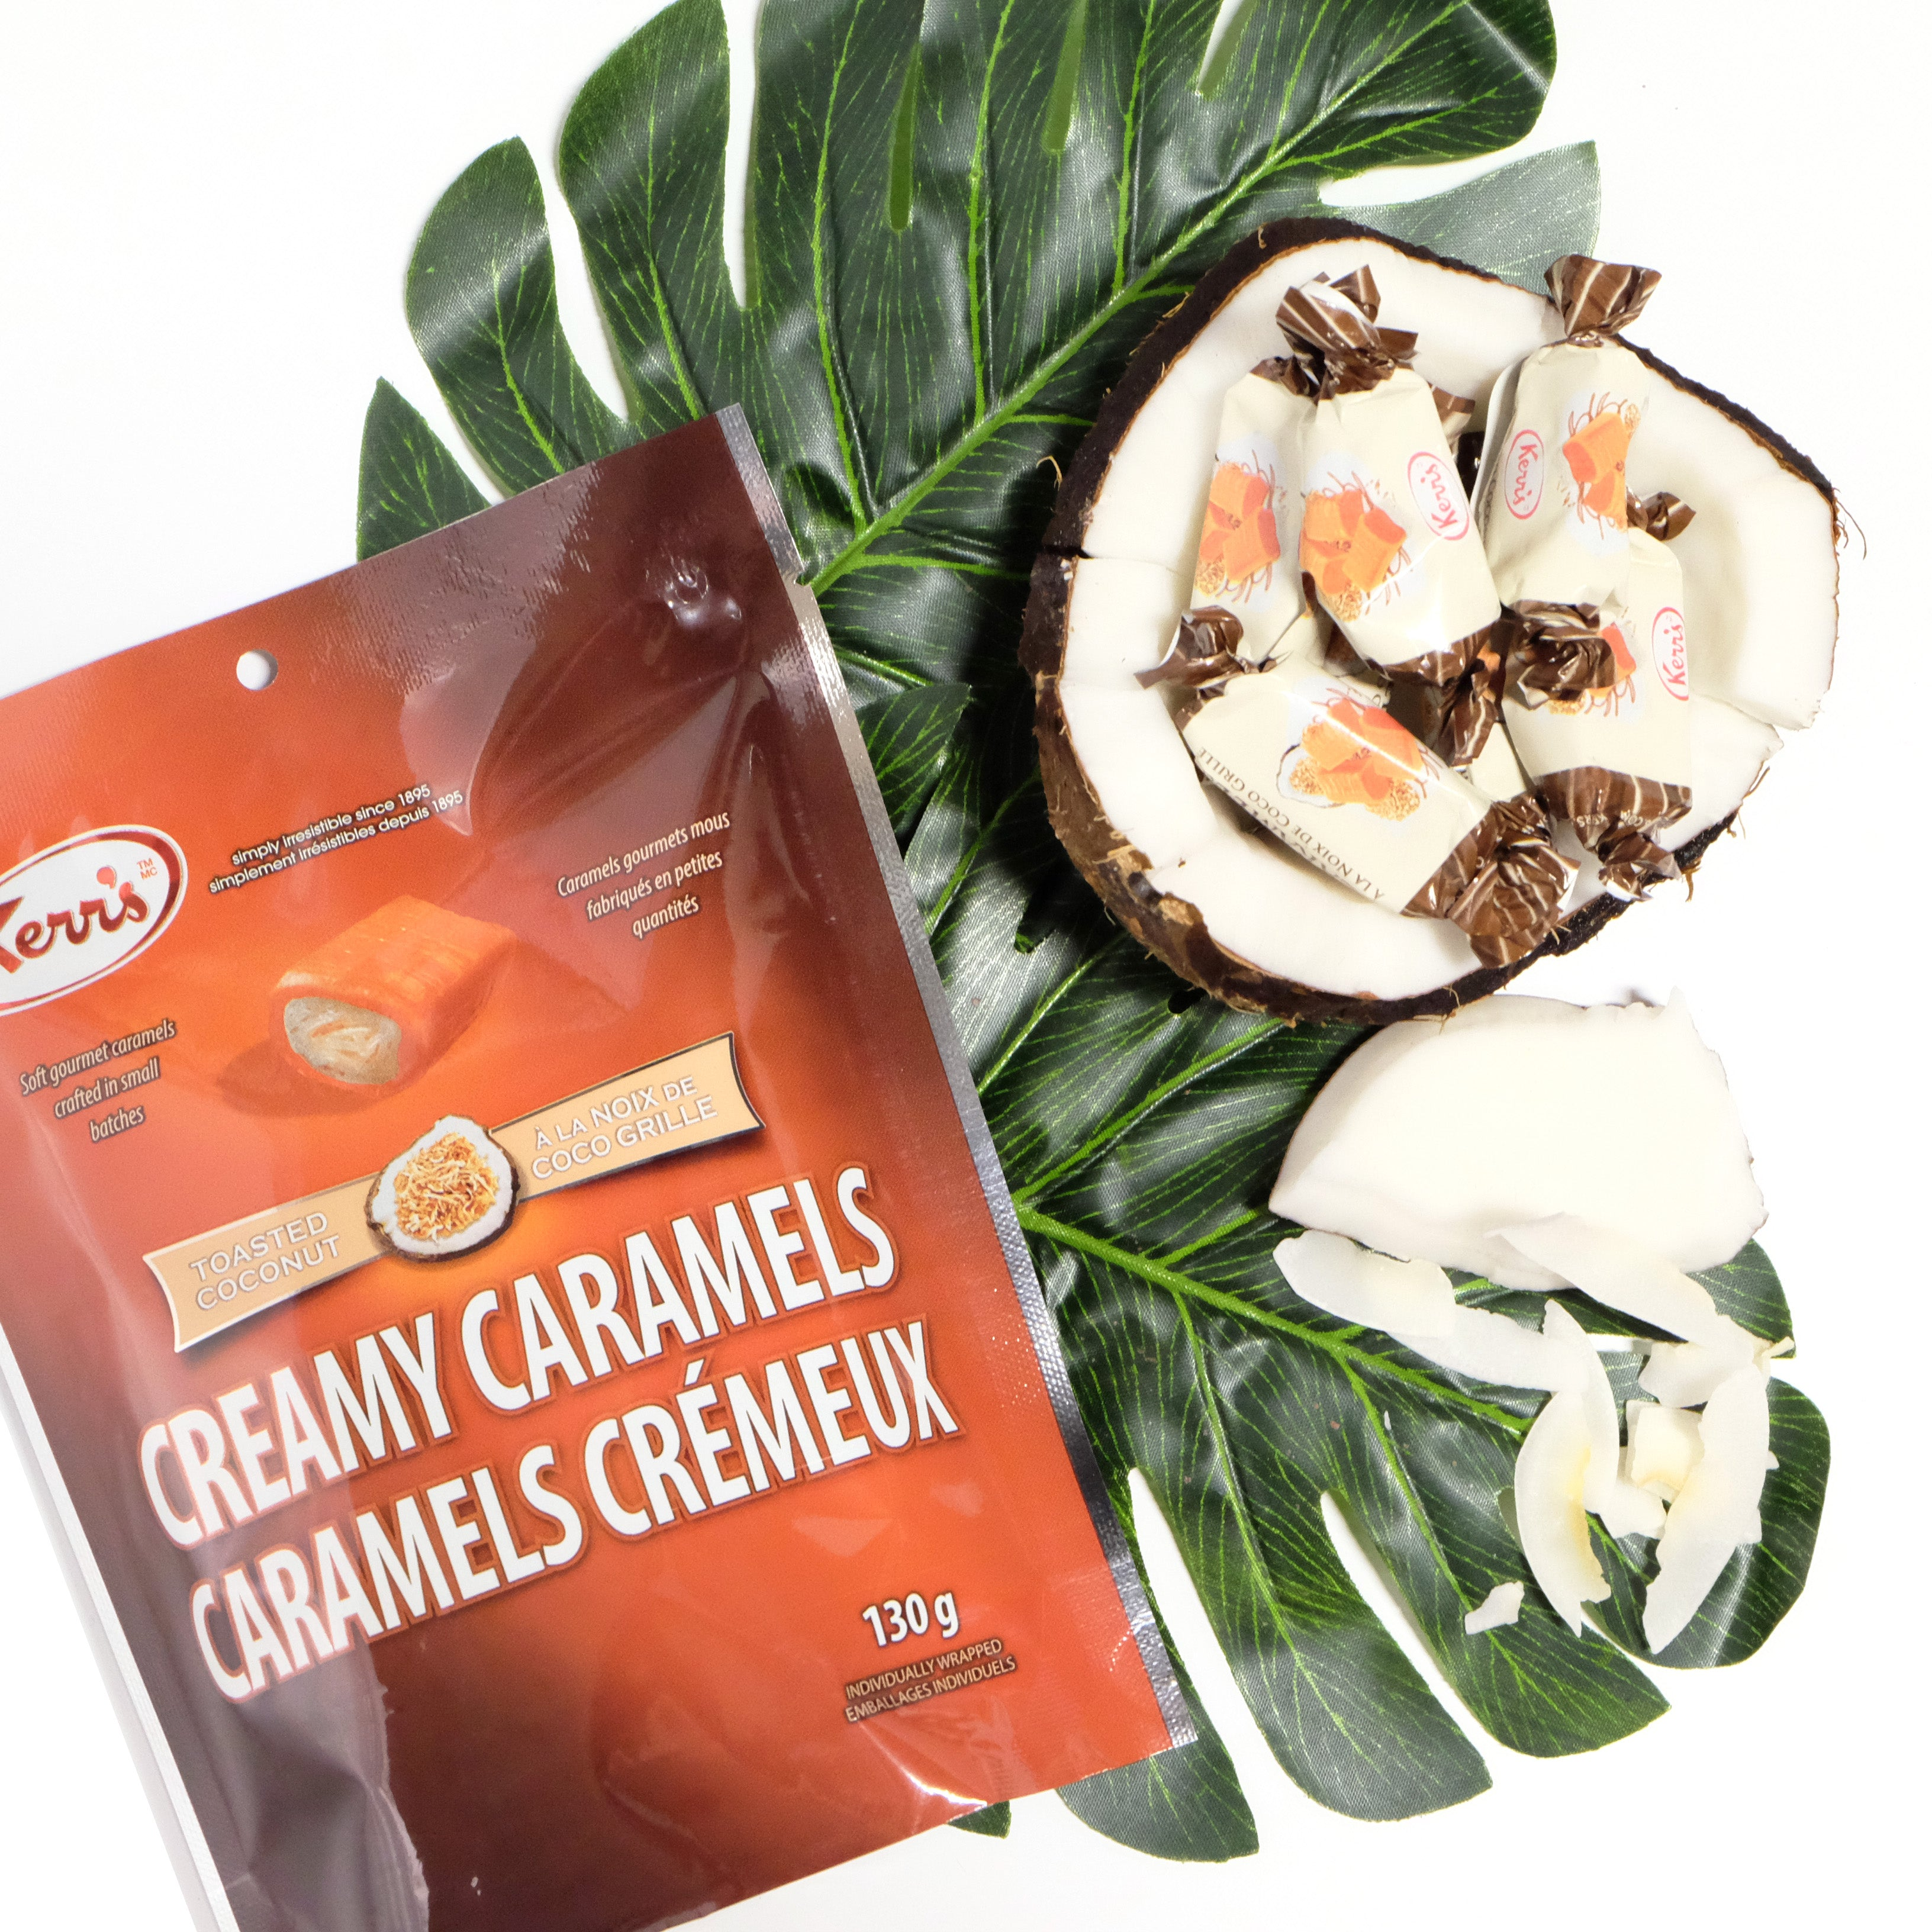 Creamy caramels toasted coconut